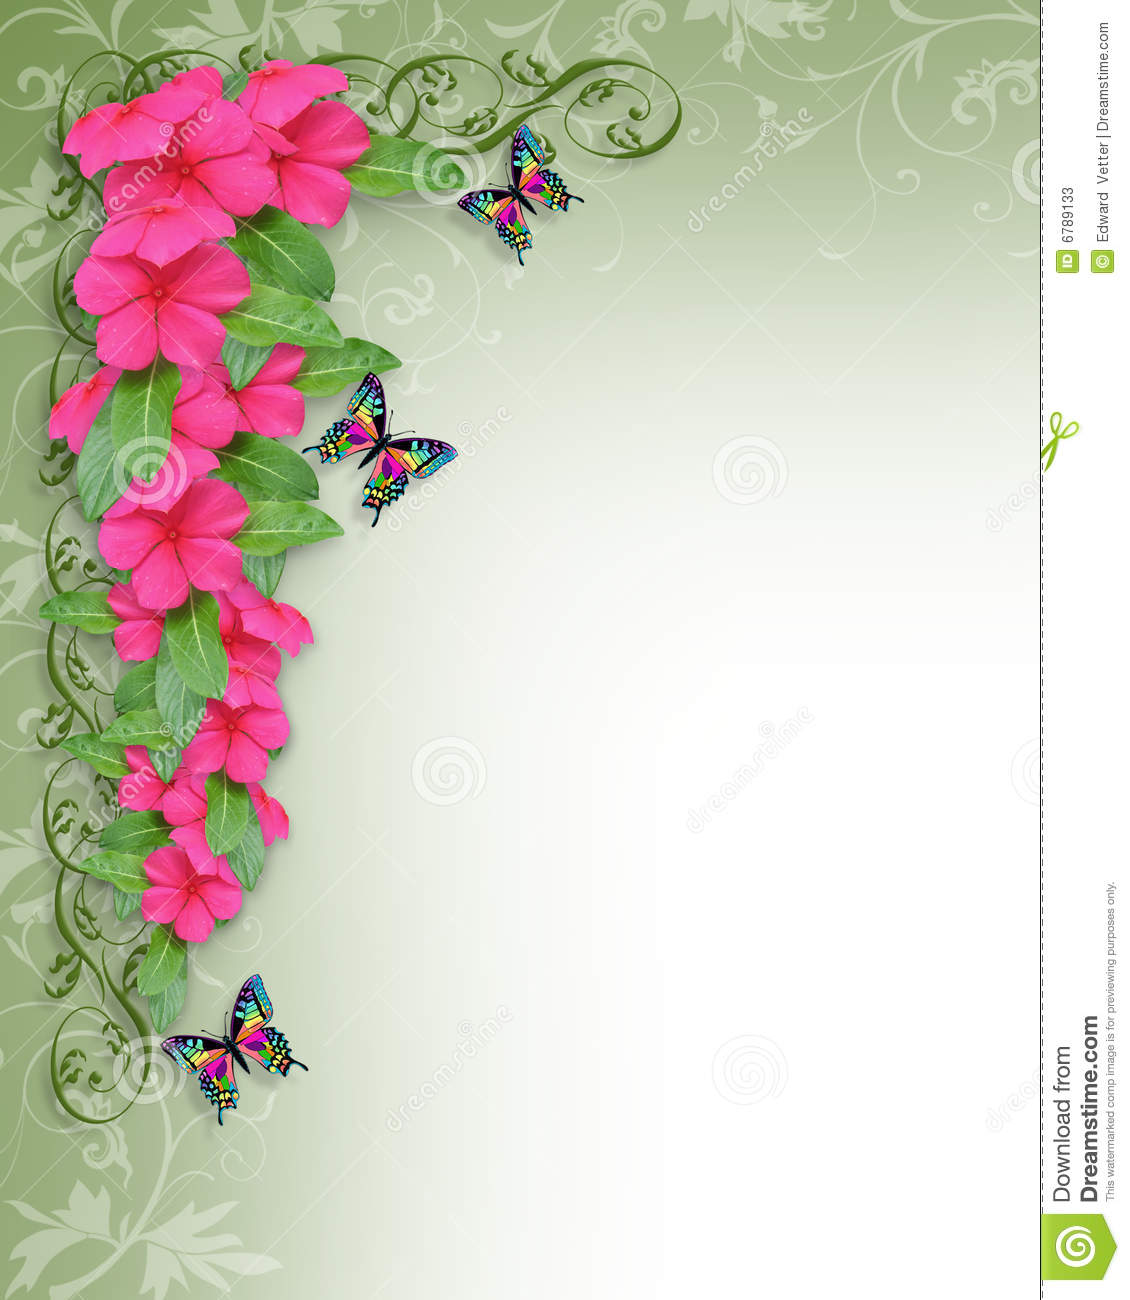 border designs for birthday invitations ; borders_for_wedding_invitation_cards_9